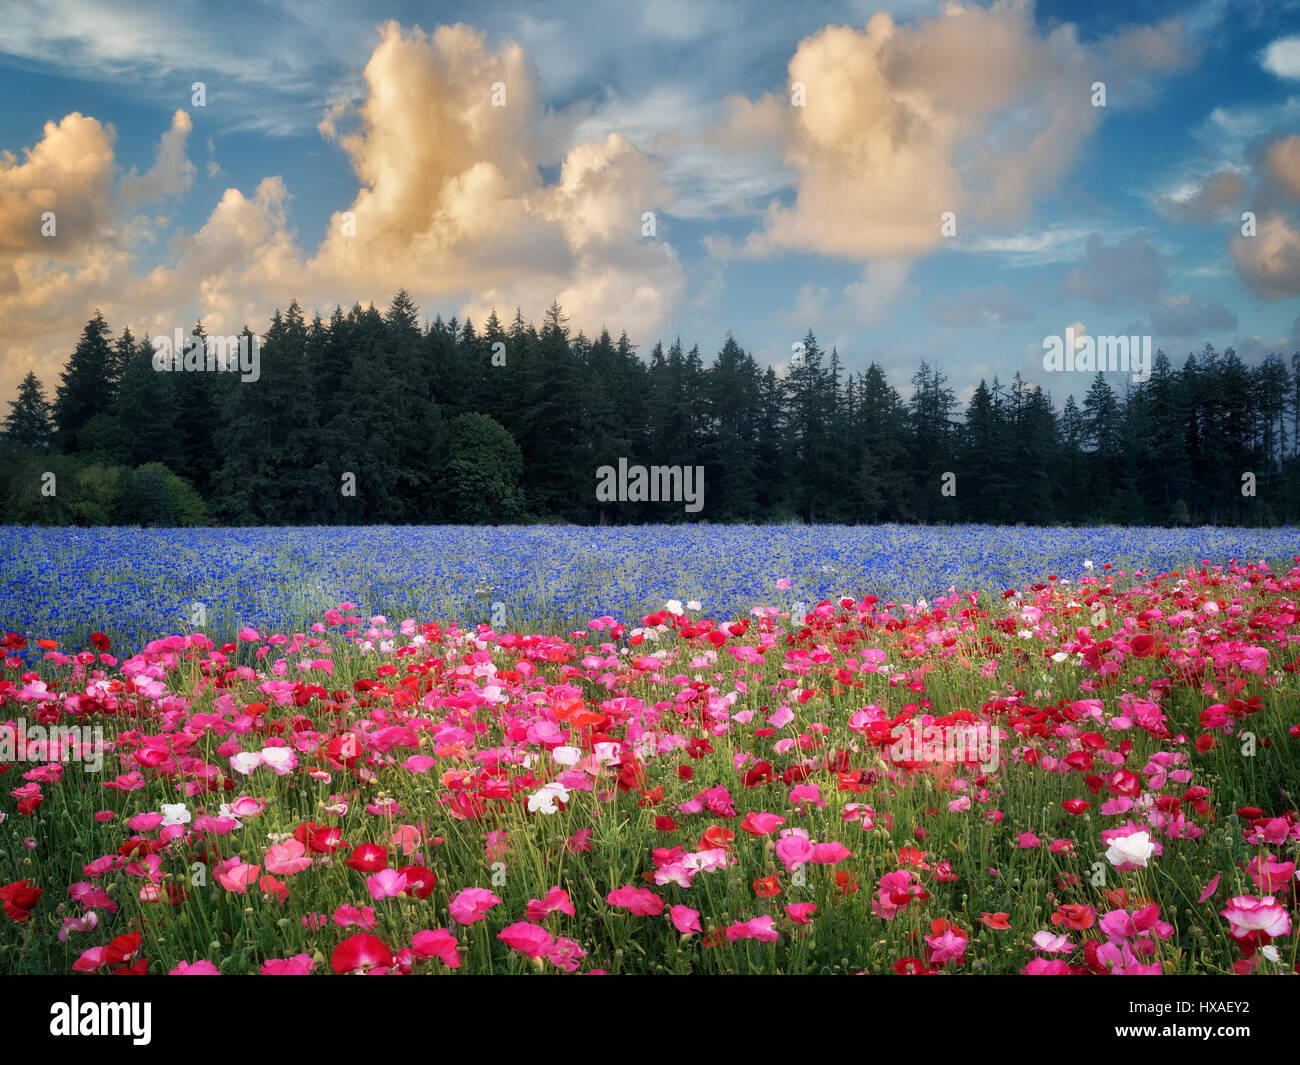 Field of poppies and bachelor buttons. Near Silverton, Oregon - Stock Image